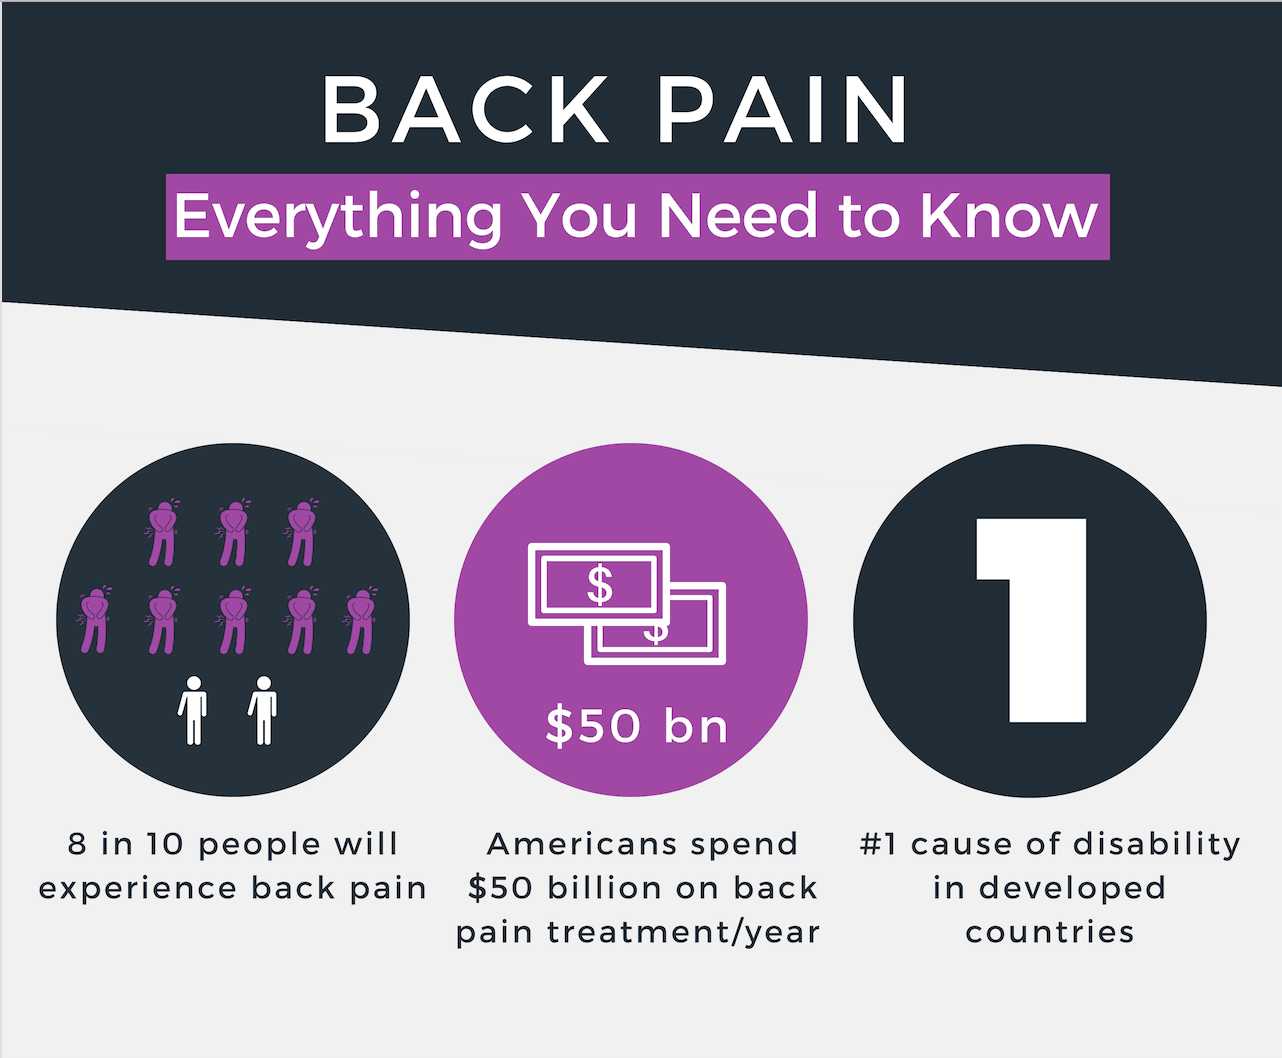 backpain-infographic-preview